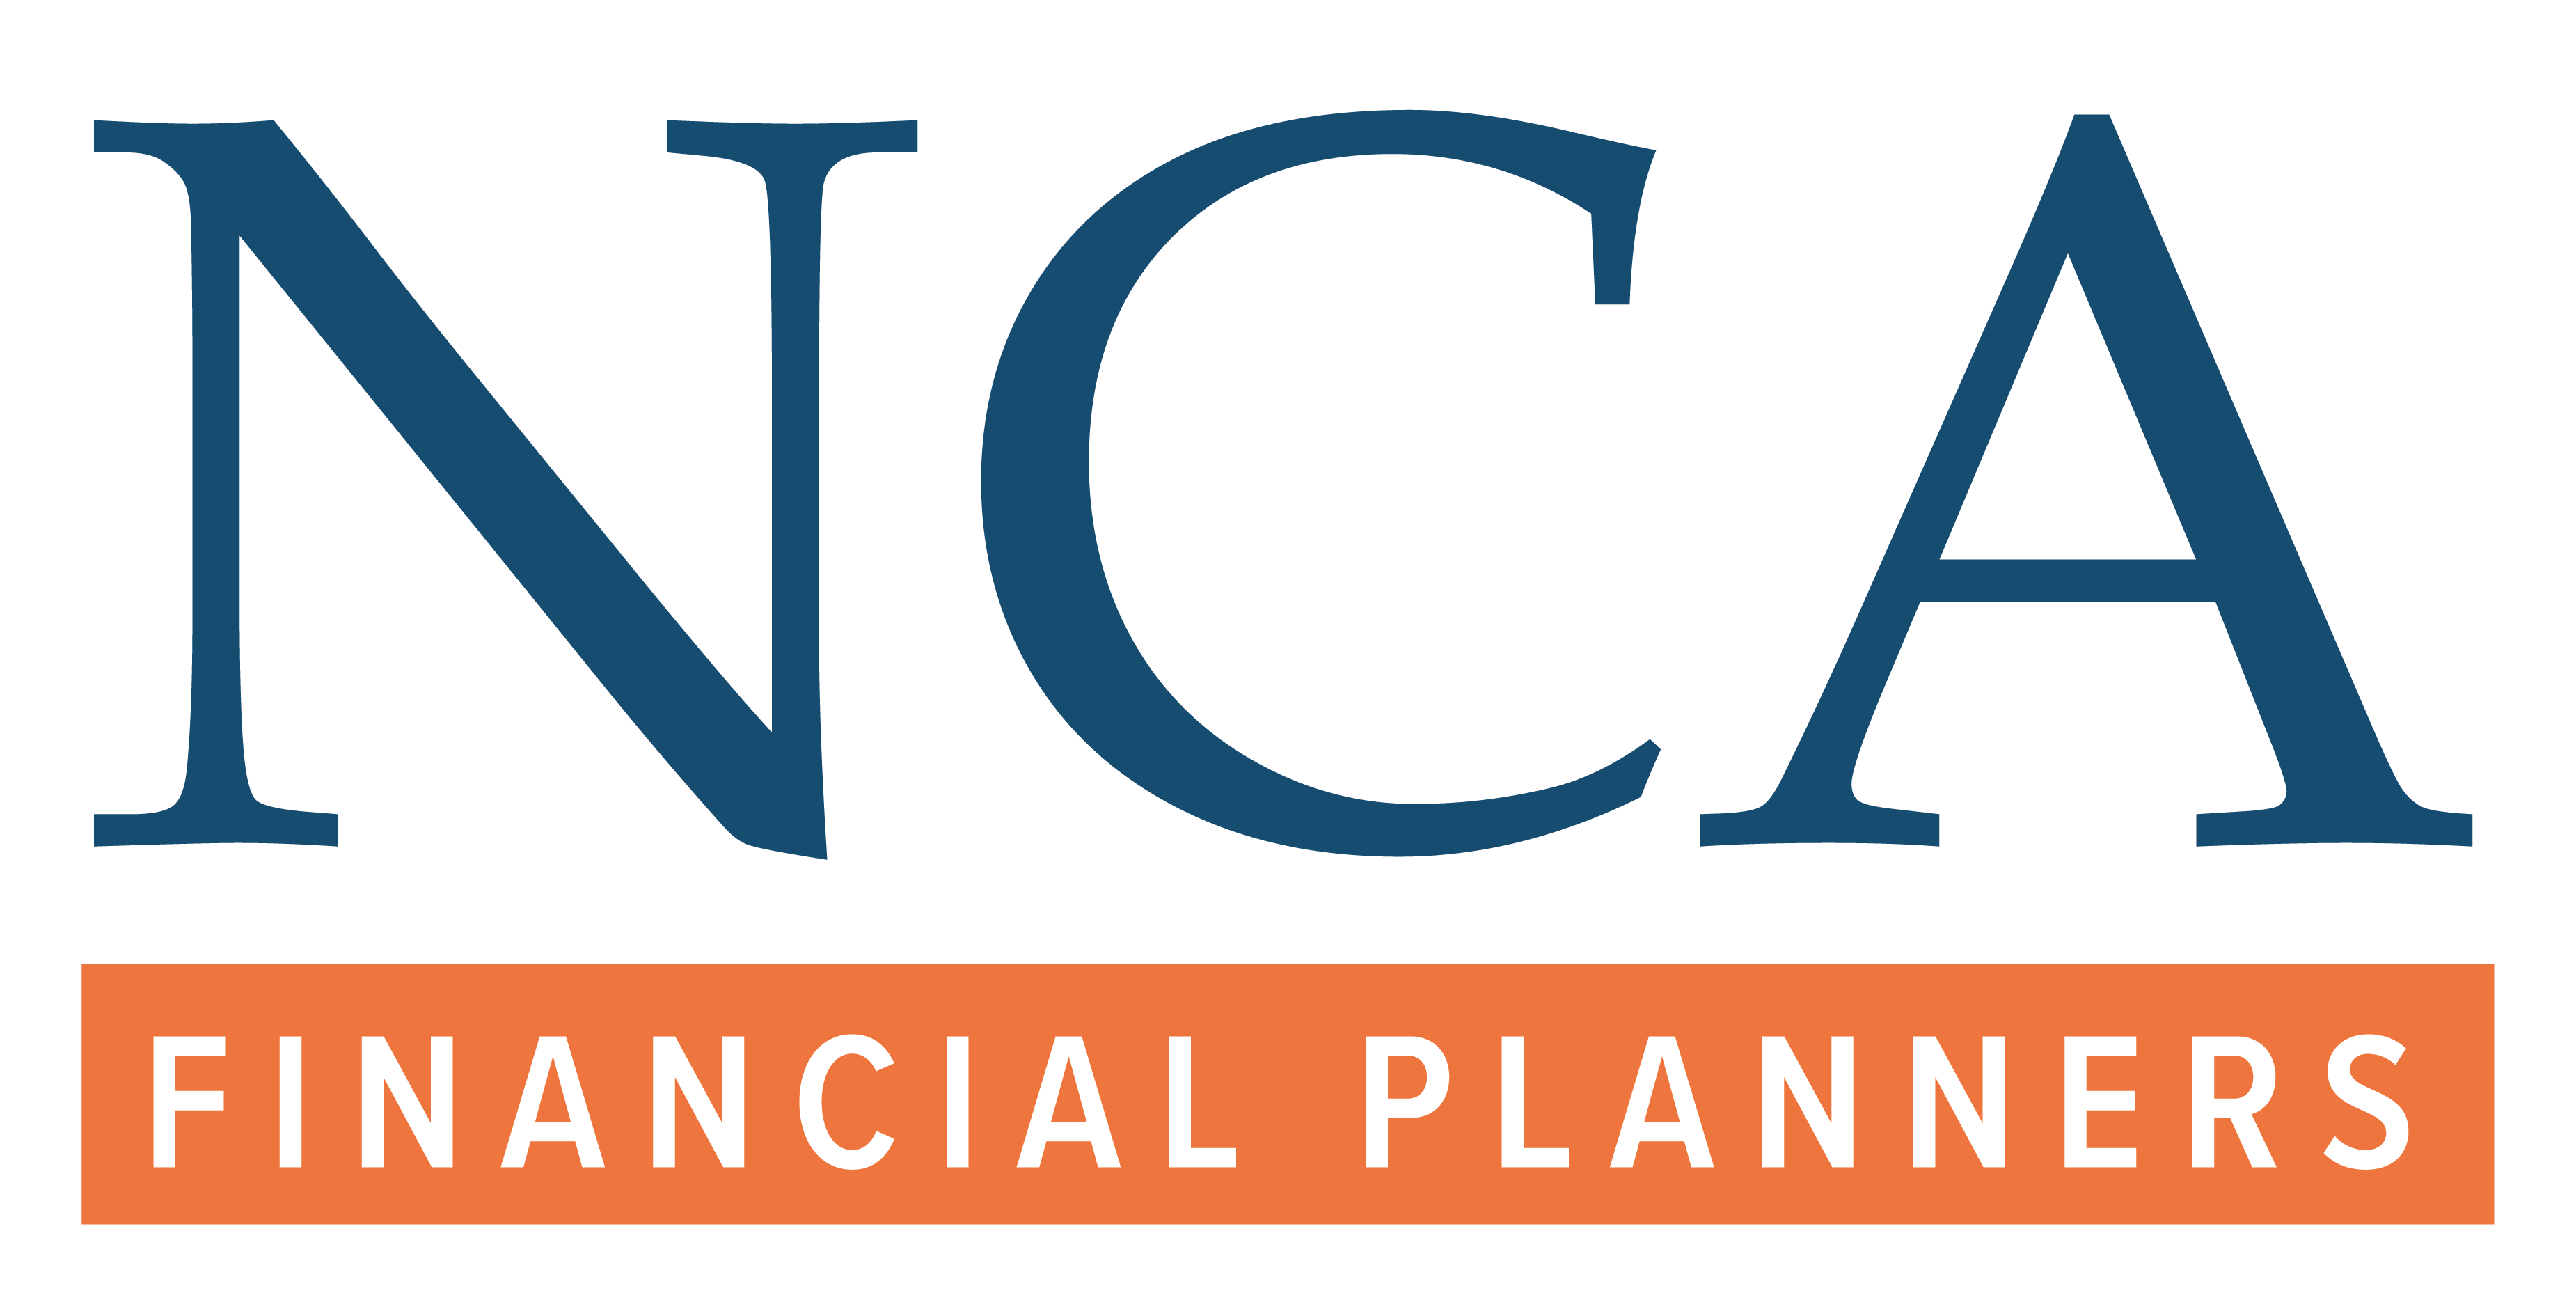 NCA Financial Planners and CEO Kevin Myeroff Named #3 Best-in-State Independent Wealth Advisor by Forbes